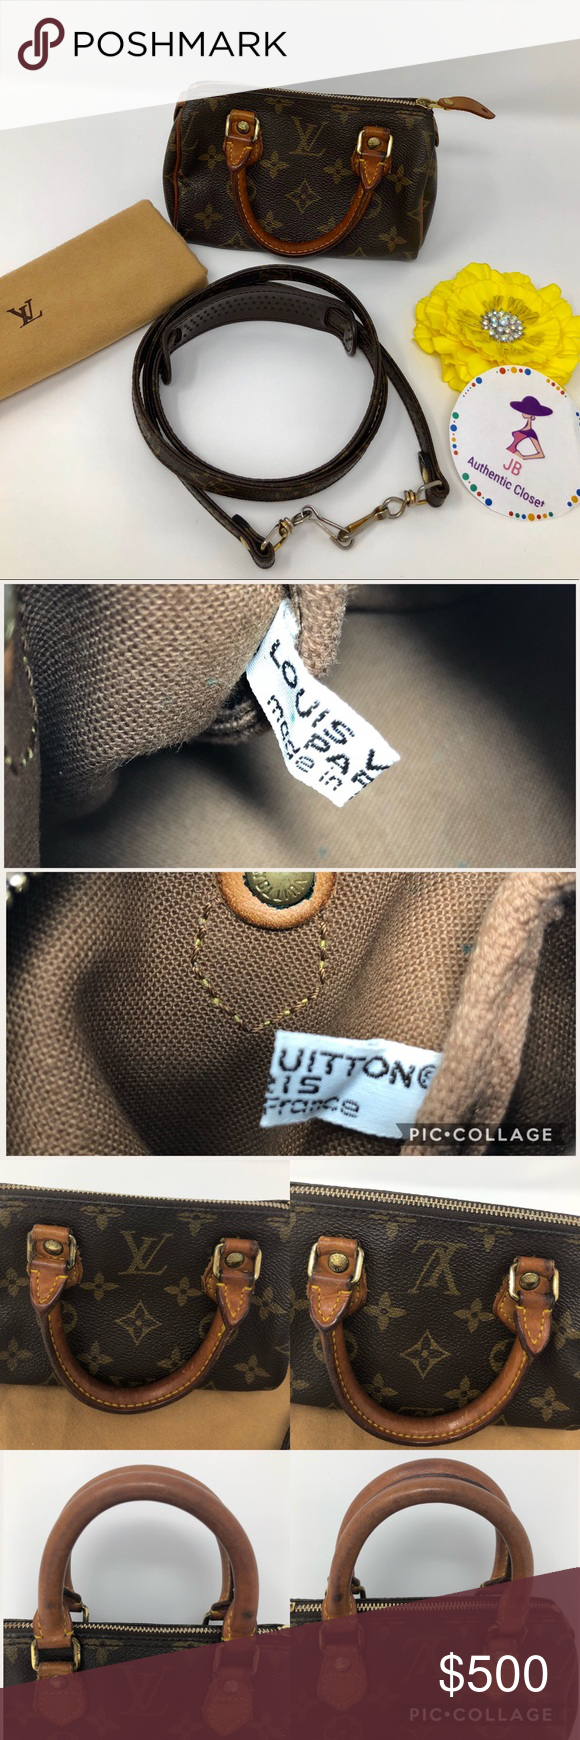 100 Authentic Mini Louis Vuitton Made In France Has No Date >> Louis Vuitton Speedy Mini 100 Authentic Preowned Used